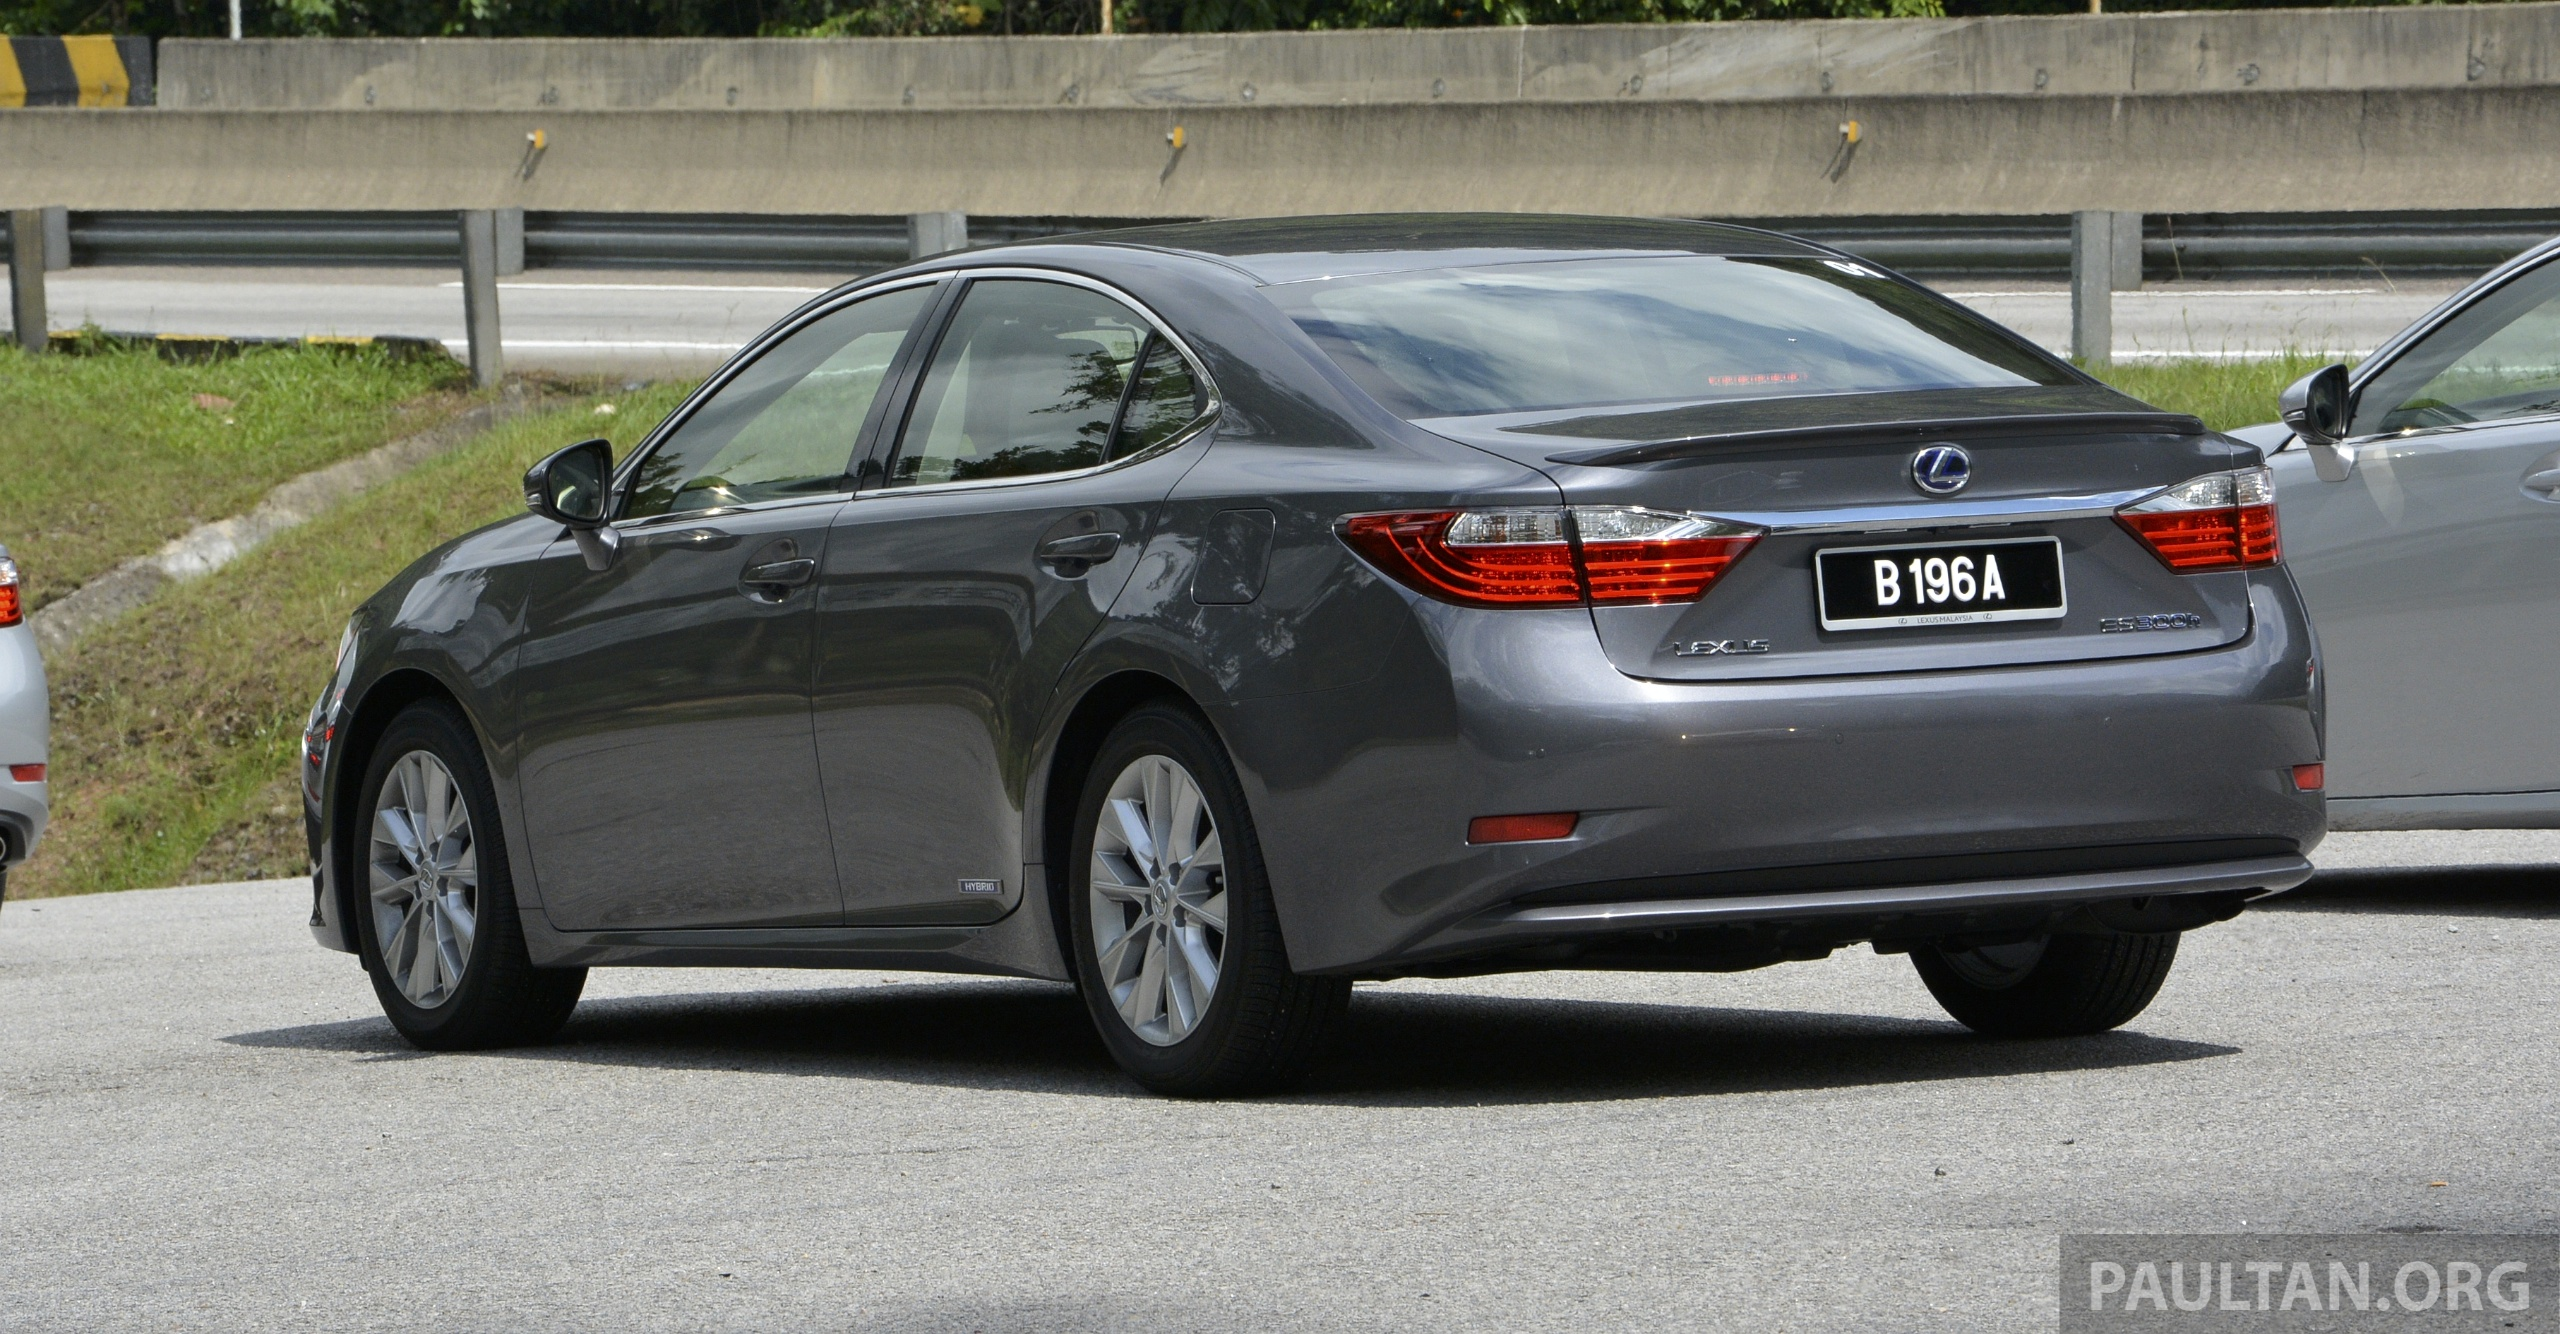 DRIVEN: 2013 Lexus ES 250 and 300h sampled Image 219450